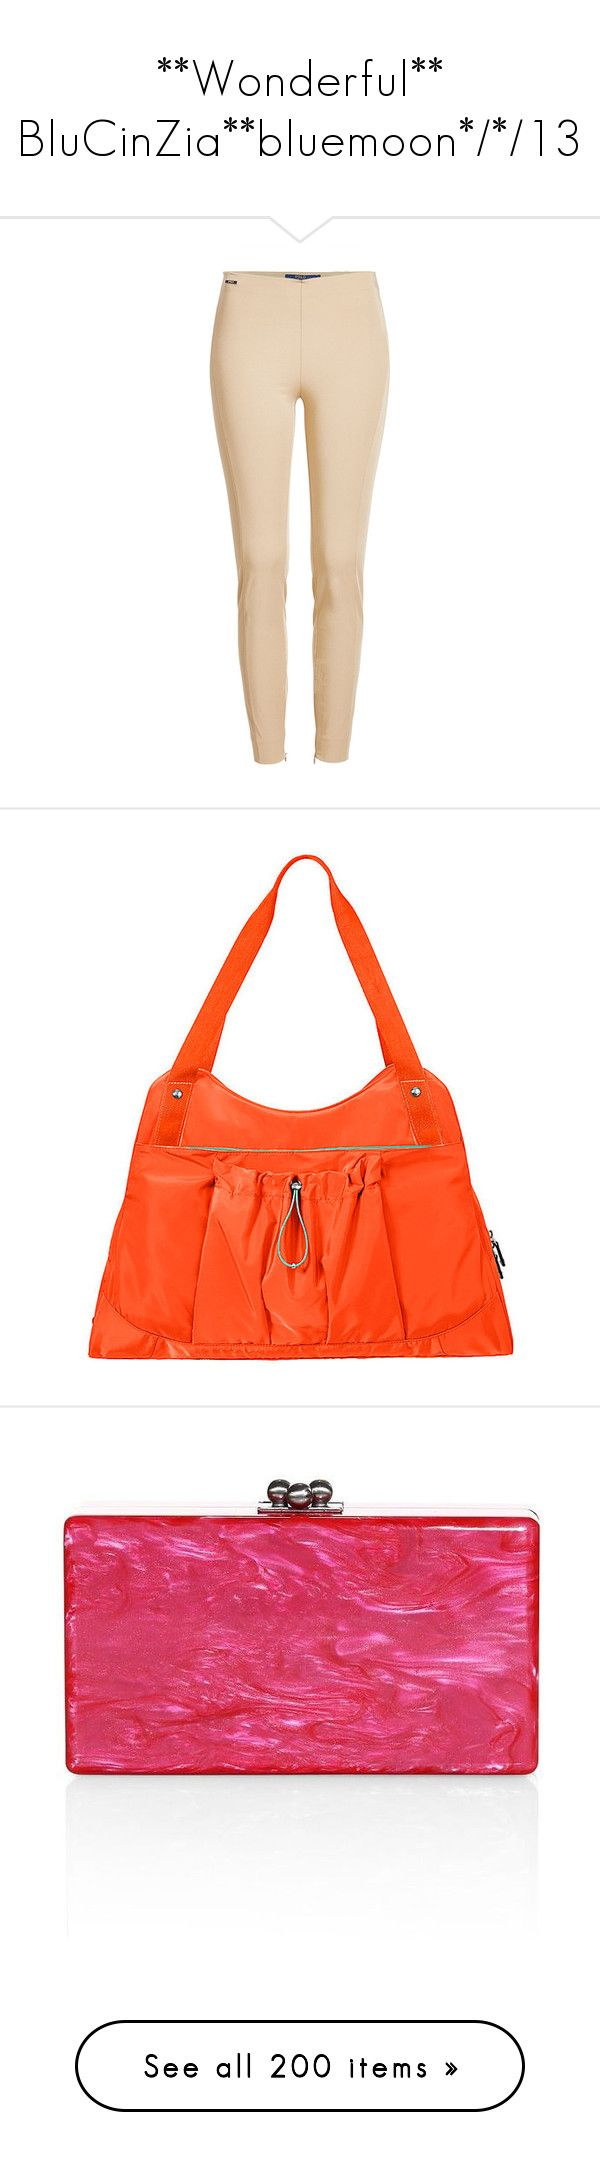 """**Wonderful** BluCinZia**bluemoon*/*/13"" by bluemoon ❤ liked on Polyvore featuring beige, polo ralph lauren, bags, handbags, tote bags, orange, tote purses, nylon pouch, orange purse and nylon tote bags"